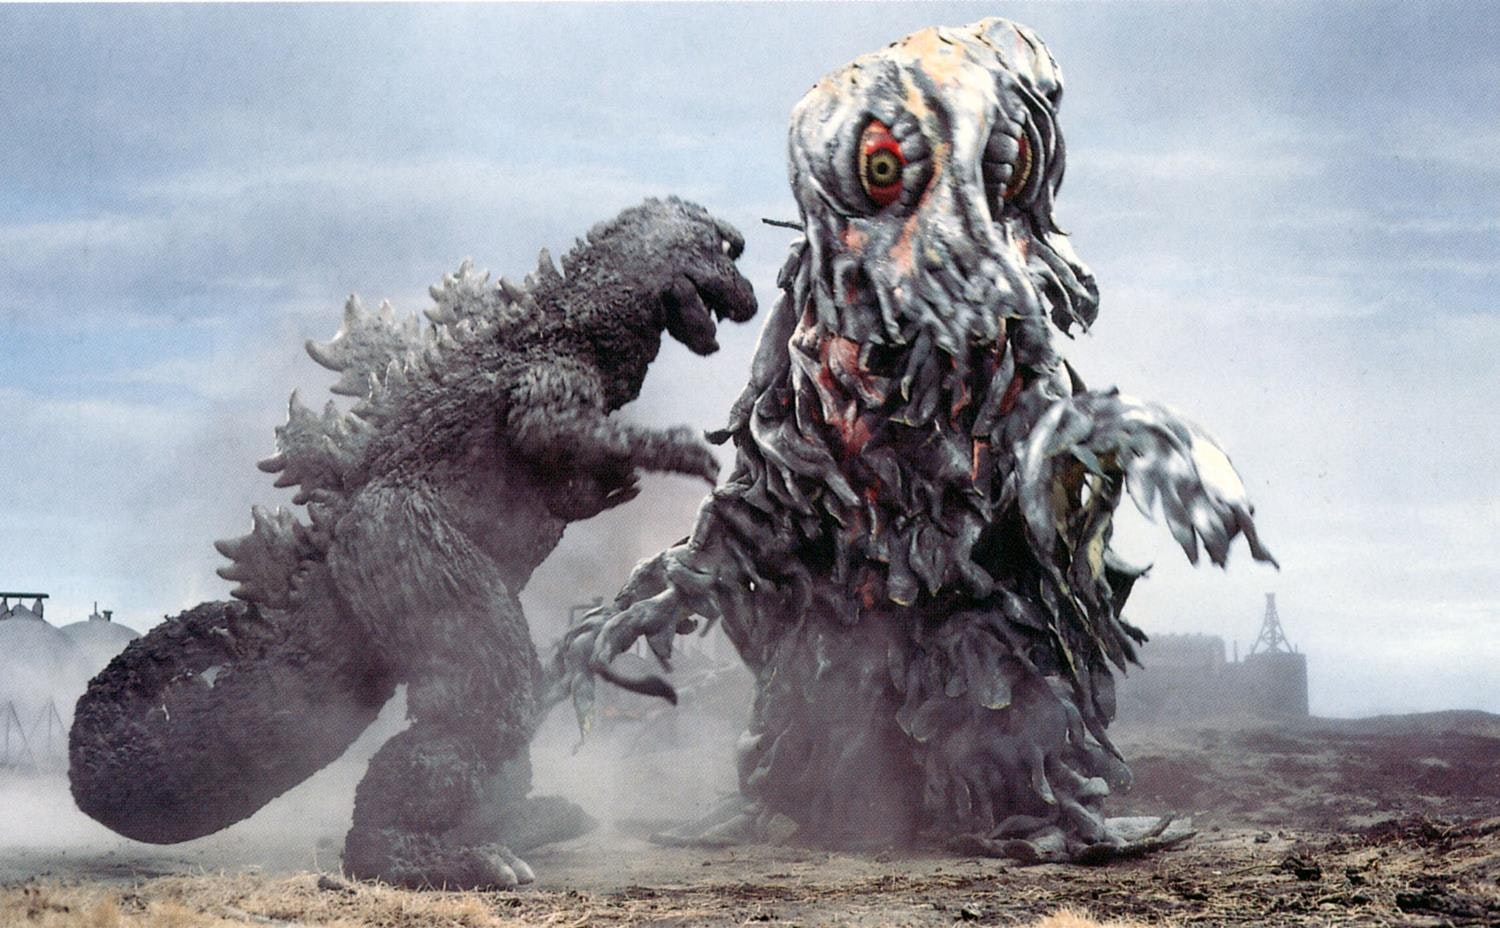 Dating tip run as fast as you can towards godzilla